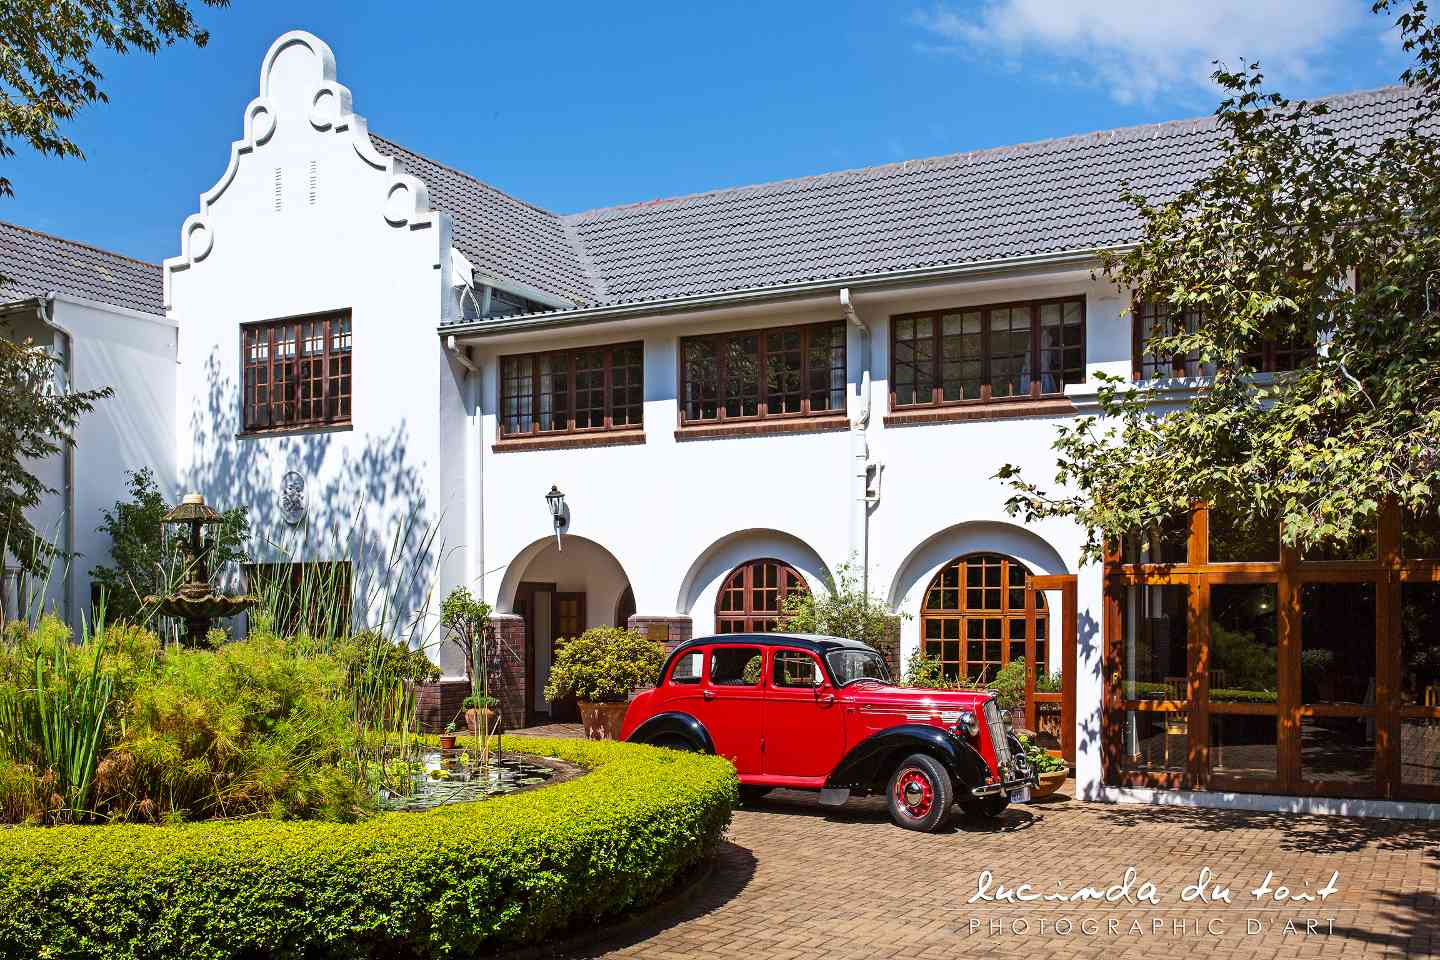 Kleinkaap boutique hotel pretoria for Kleine boutique hotels